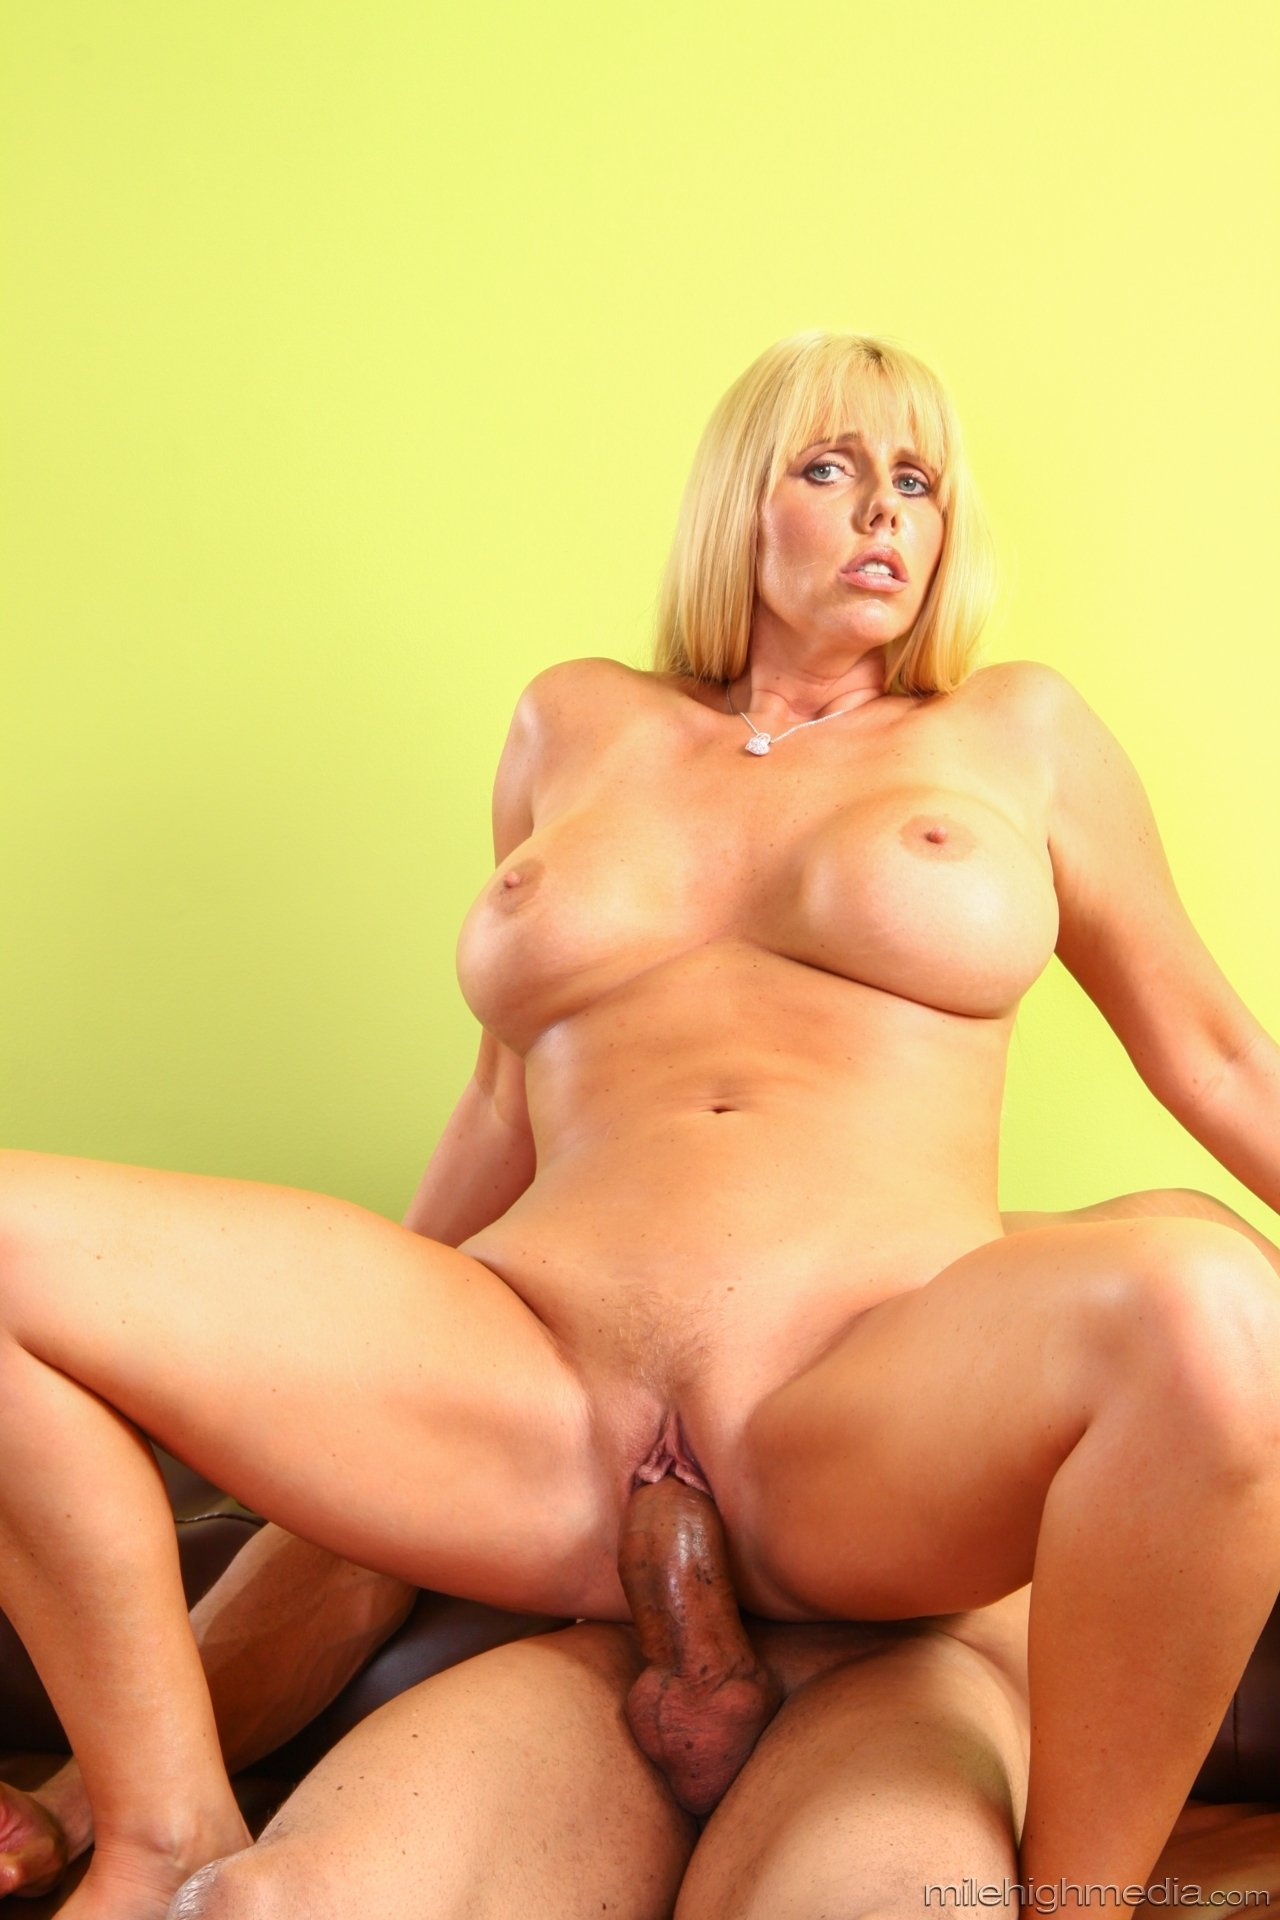 Mom and son japanes family sex smokin hot blond